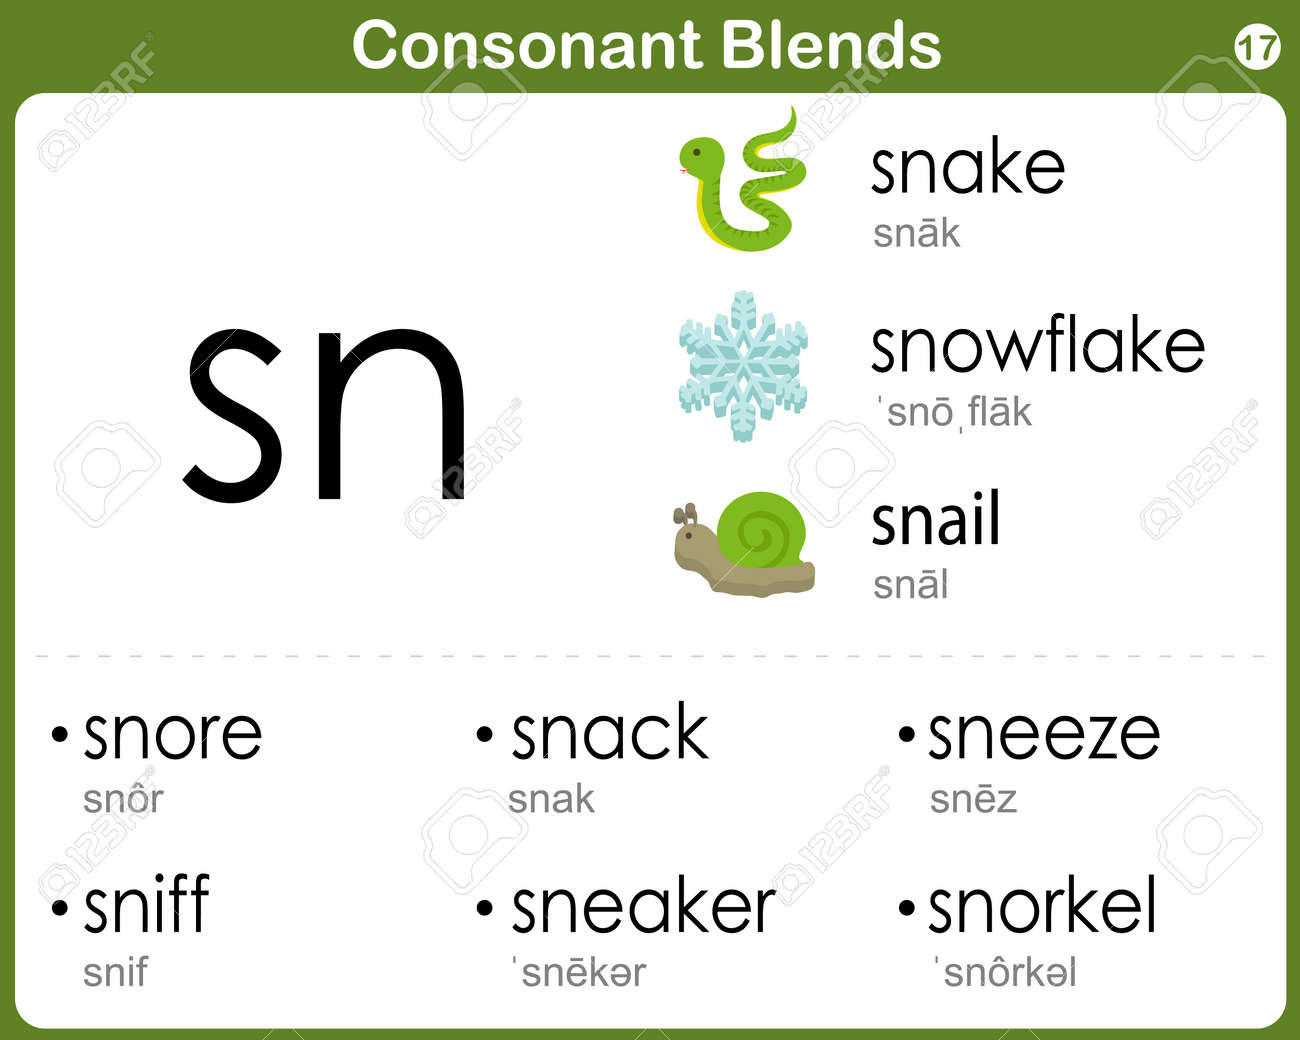 Worksheet Consonant Blends Worksheets For Kindergarten consonant blends worksheets for kindergarten blend worksheet kids royalty free cliparts vectors